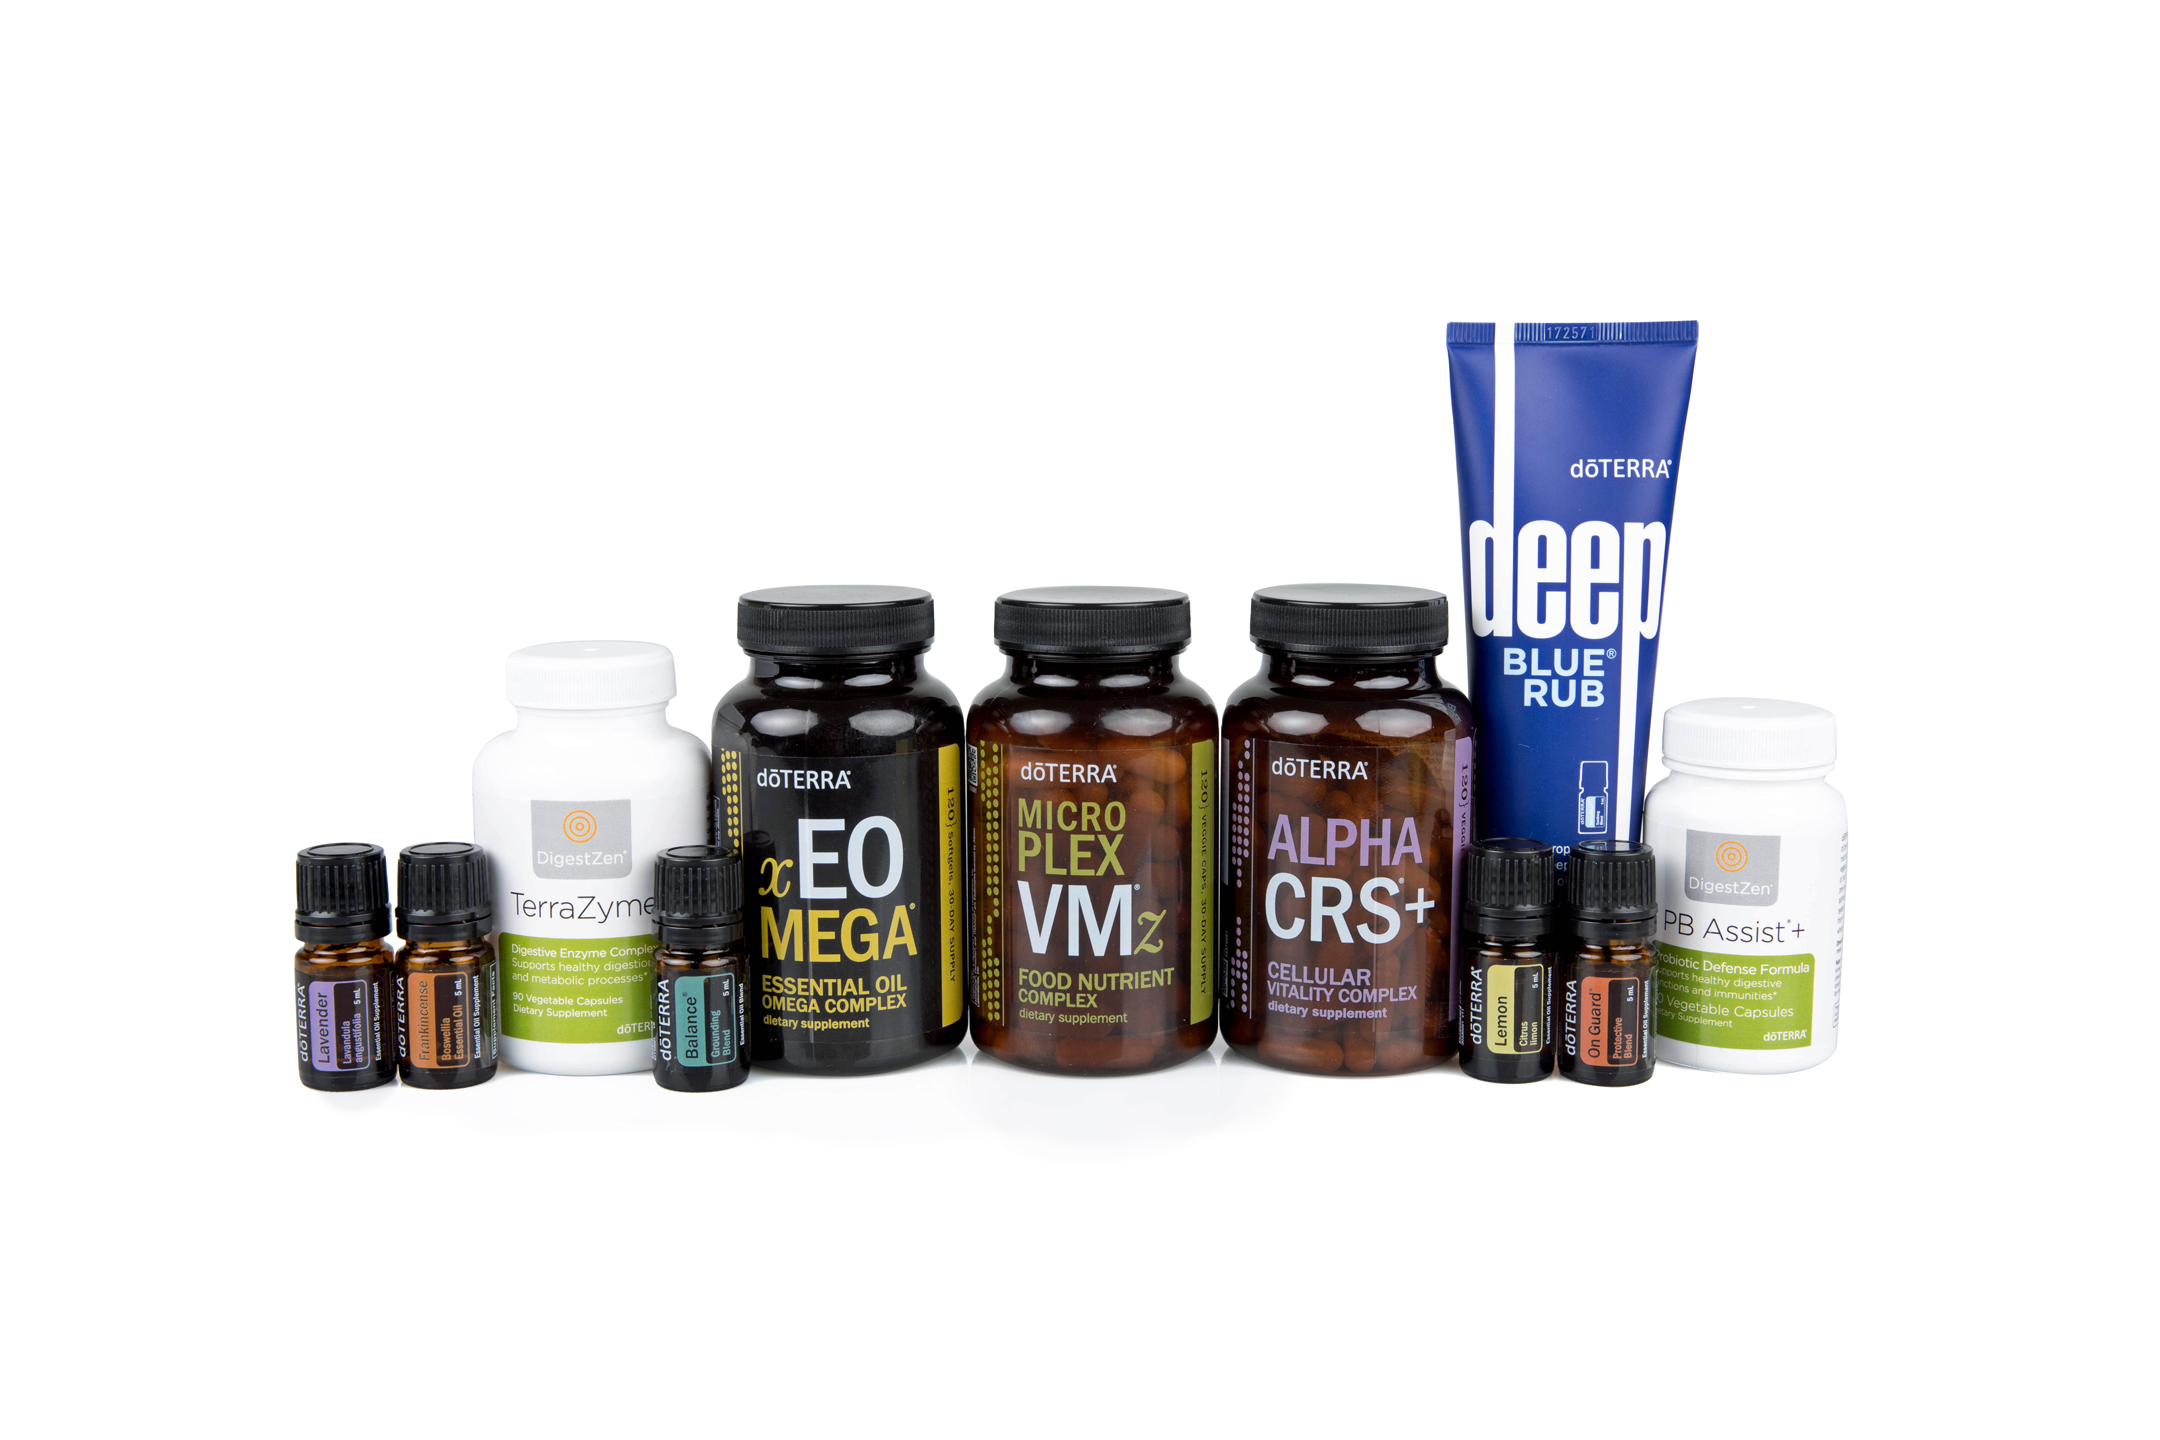 Healthy Habits Kit - This is the most anticipated enrollment kit in the history of doTERRA, especially after our 2019 Healthy Habits for Life—Spring Tour. SKU 60209837 $195.00 Wholesale 125 PV